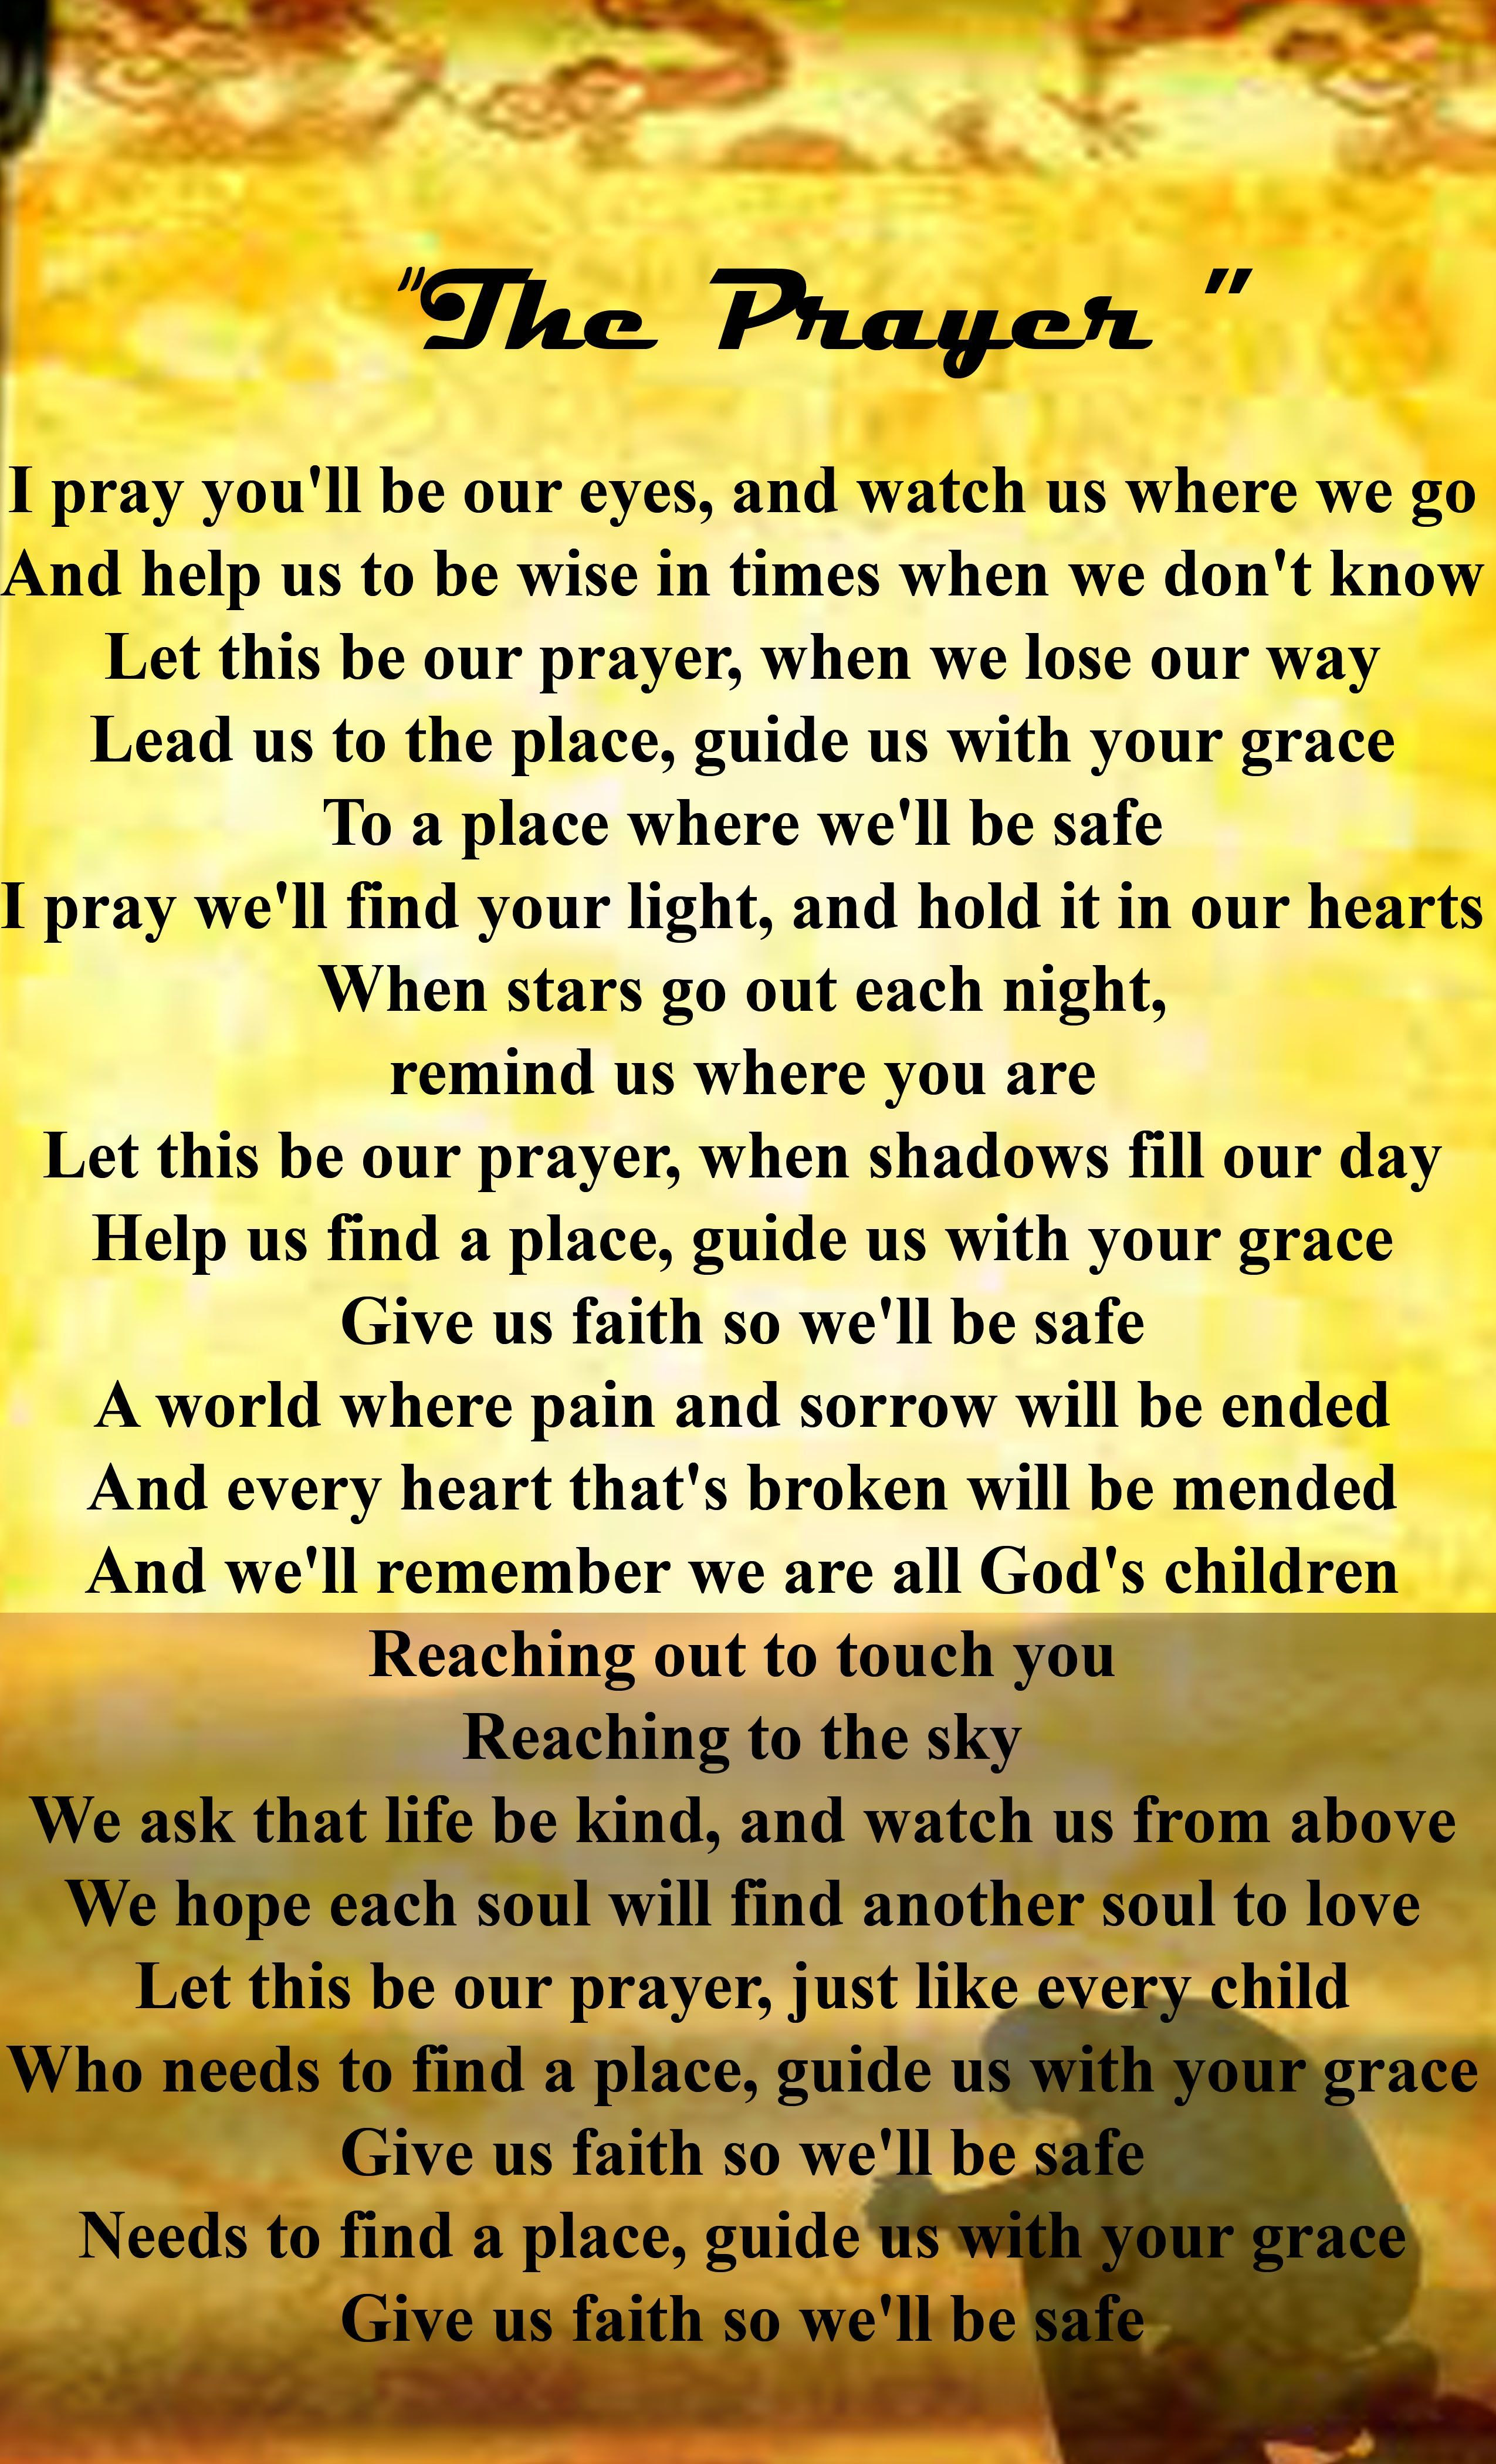 """The Prayer"" lyrics -- duet by Celine Dion & Andrea Bocelli The Prayer Lyrics, Our Father Lyrics, Great Song Lyrics, Music Lyrics, Love Songs, Music Songs, My Music, Gospel Song Lyrics, Virginia"